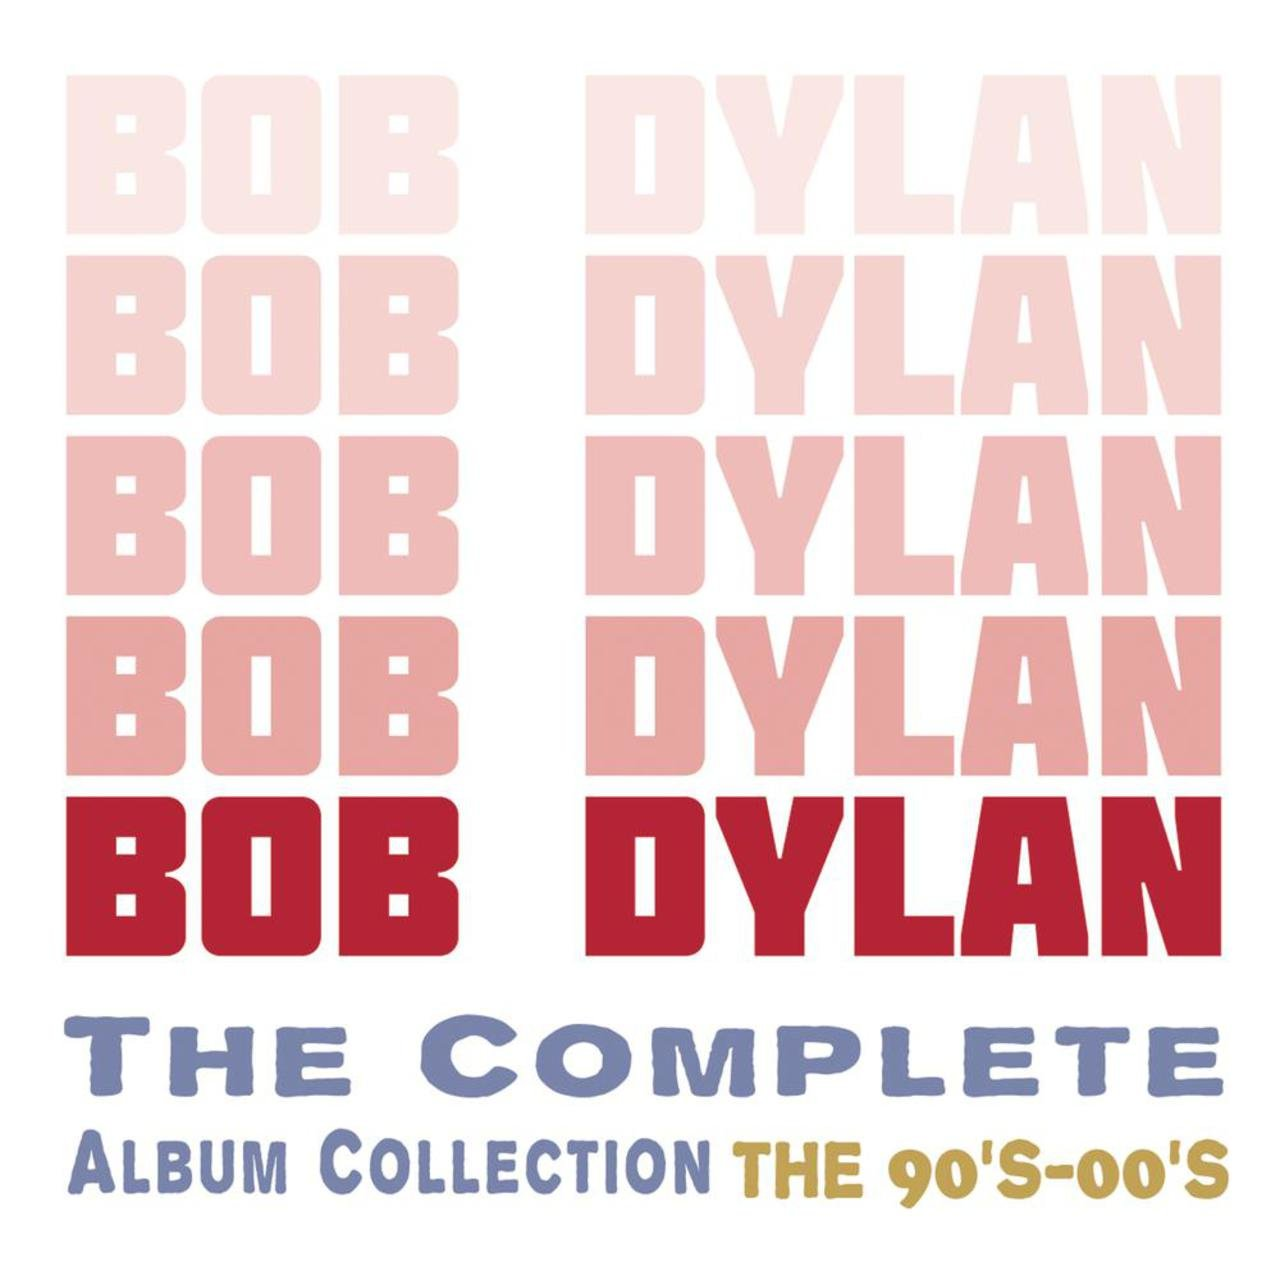 The Complete Album Collection - The 90's - 00's